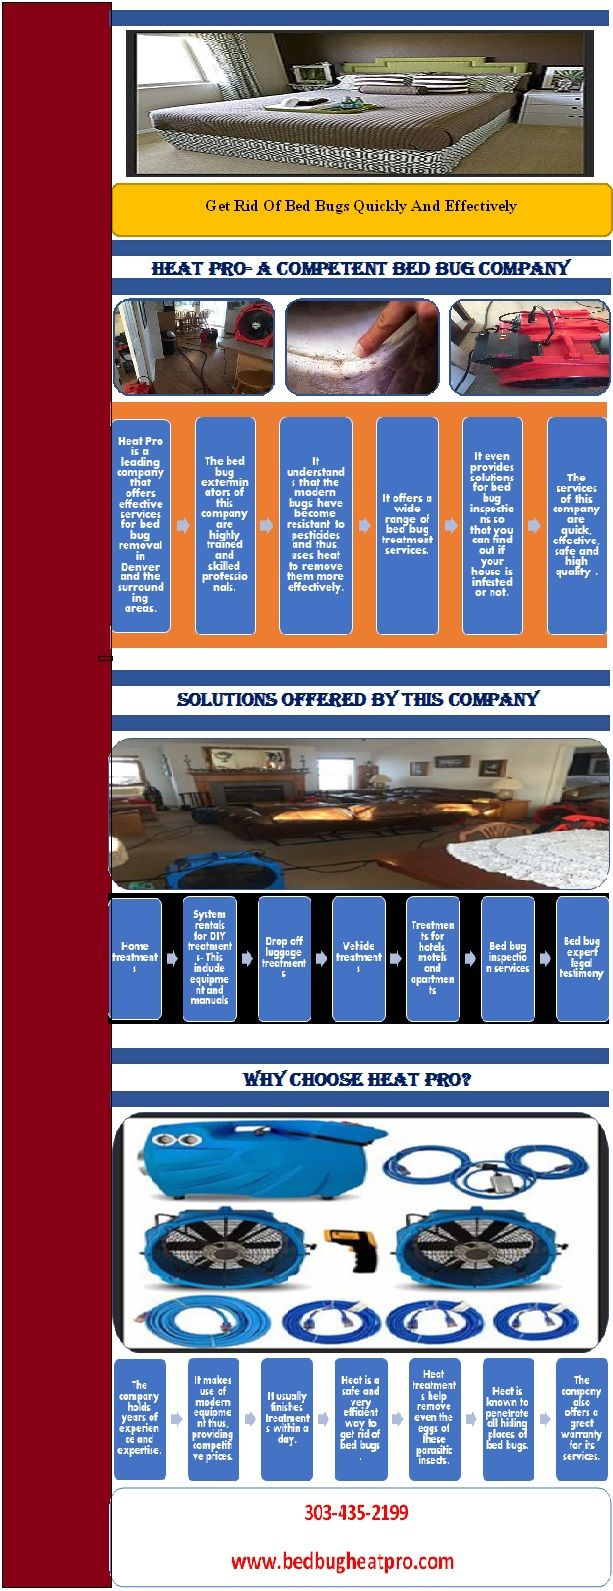 Heat Pro is a leading company that offers effective